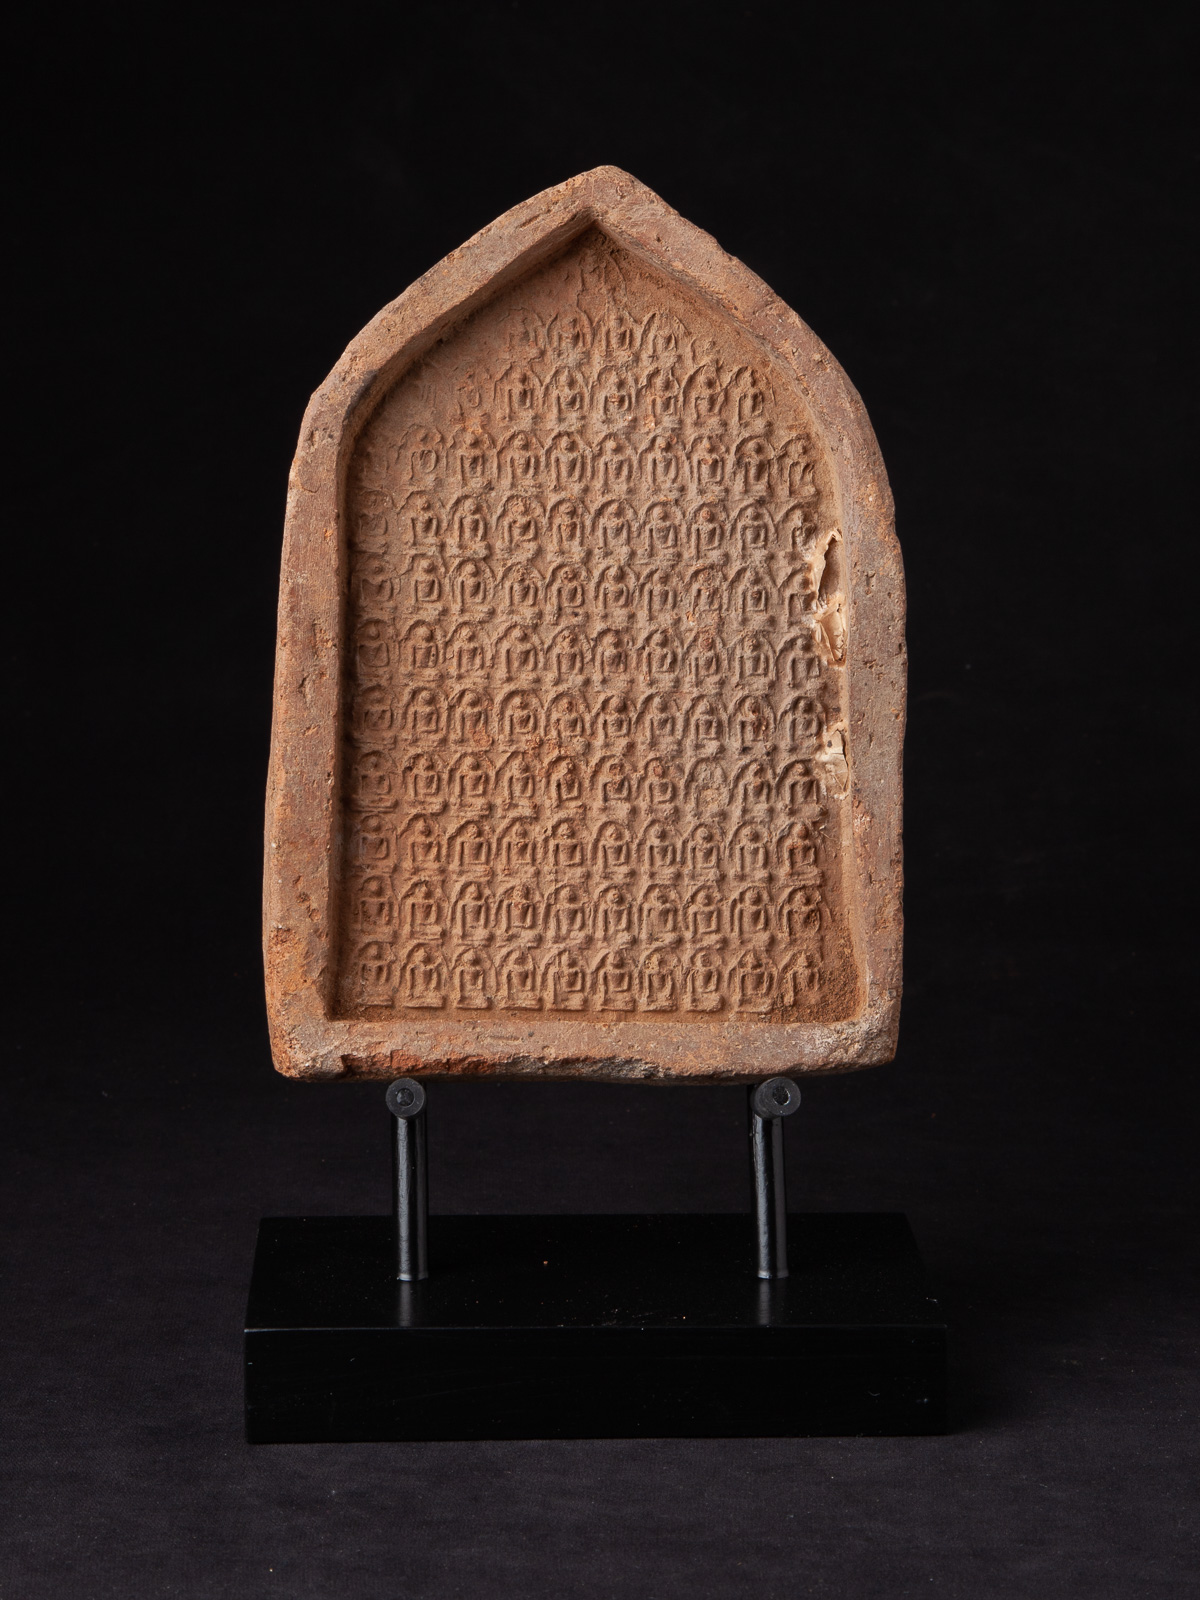 12th century Pagan Votive Tablet from Burma made from Clay / Pottery